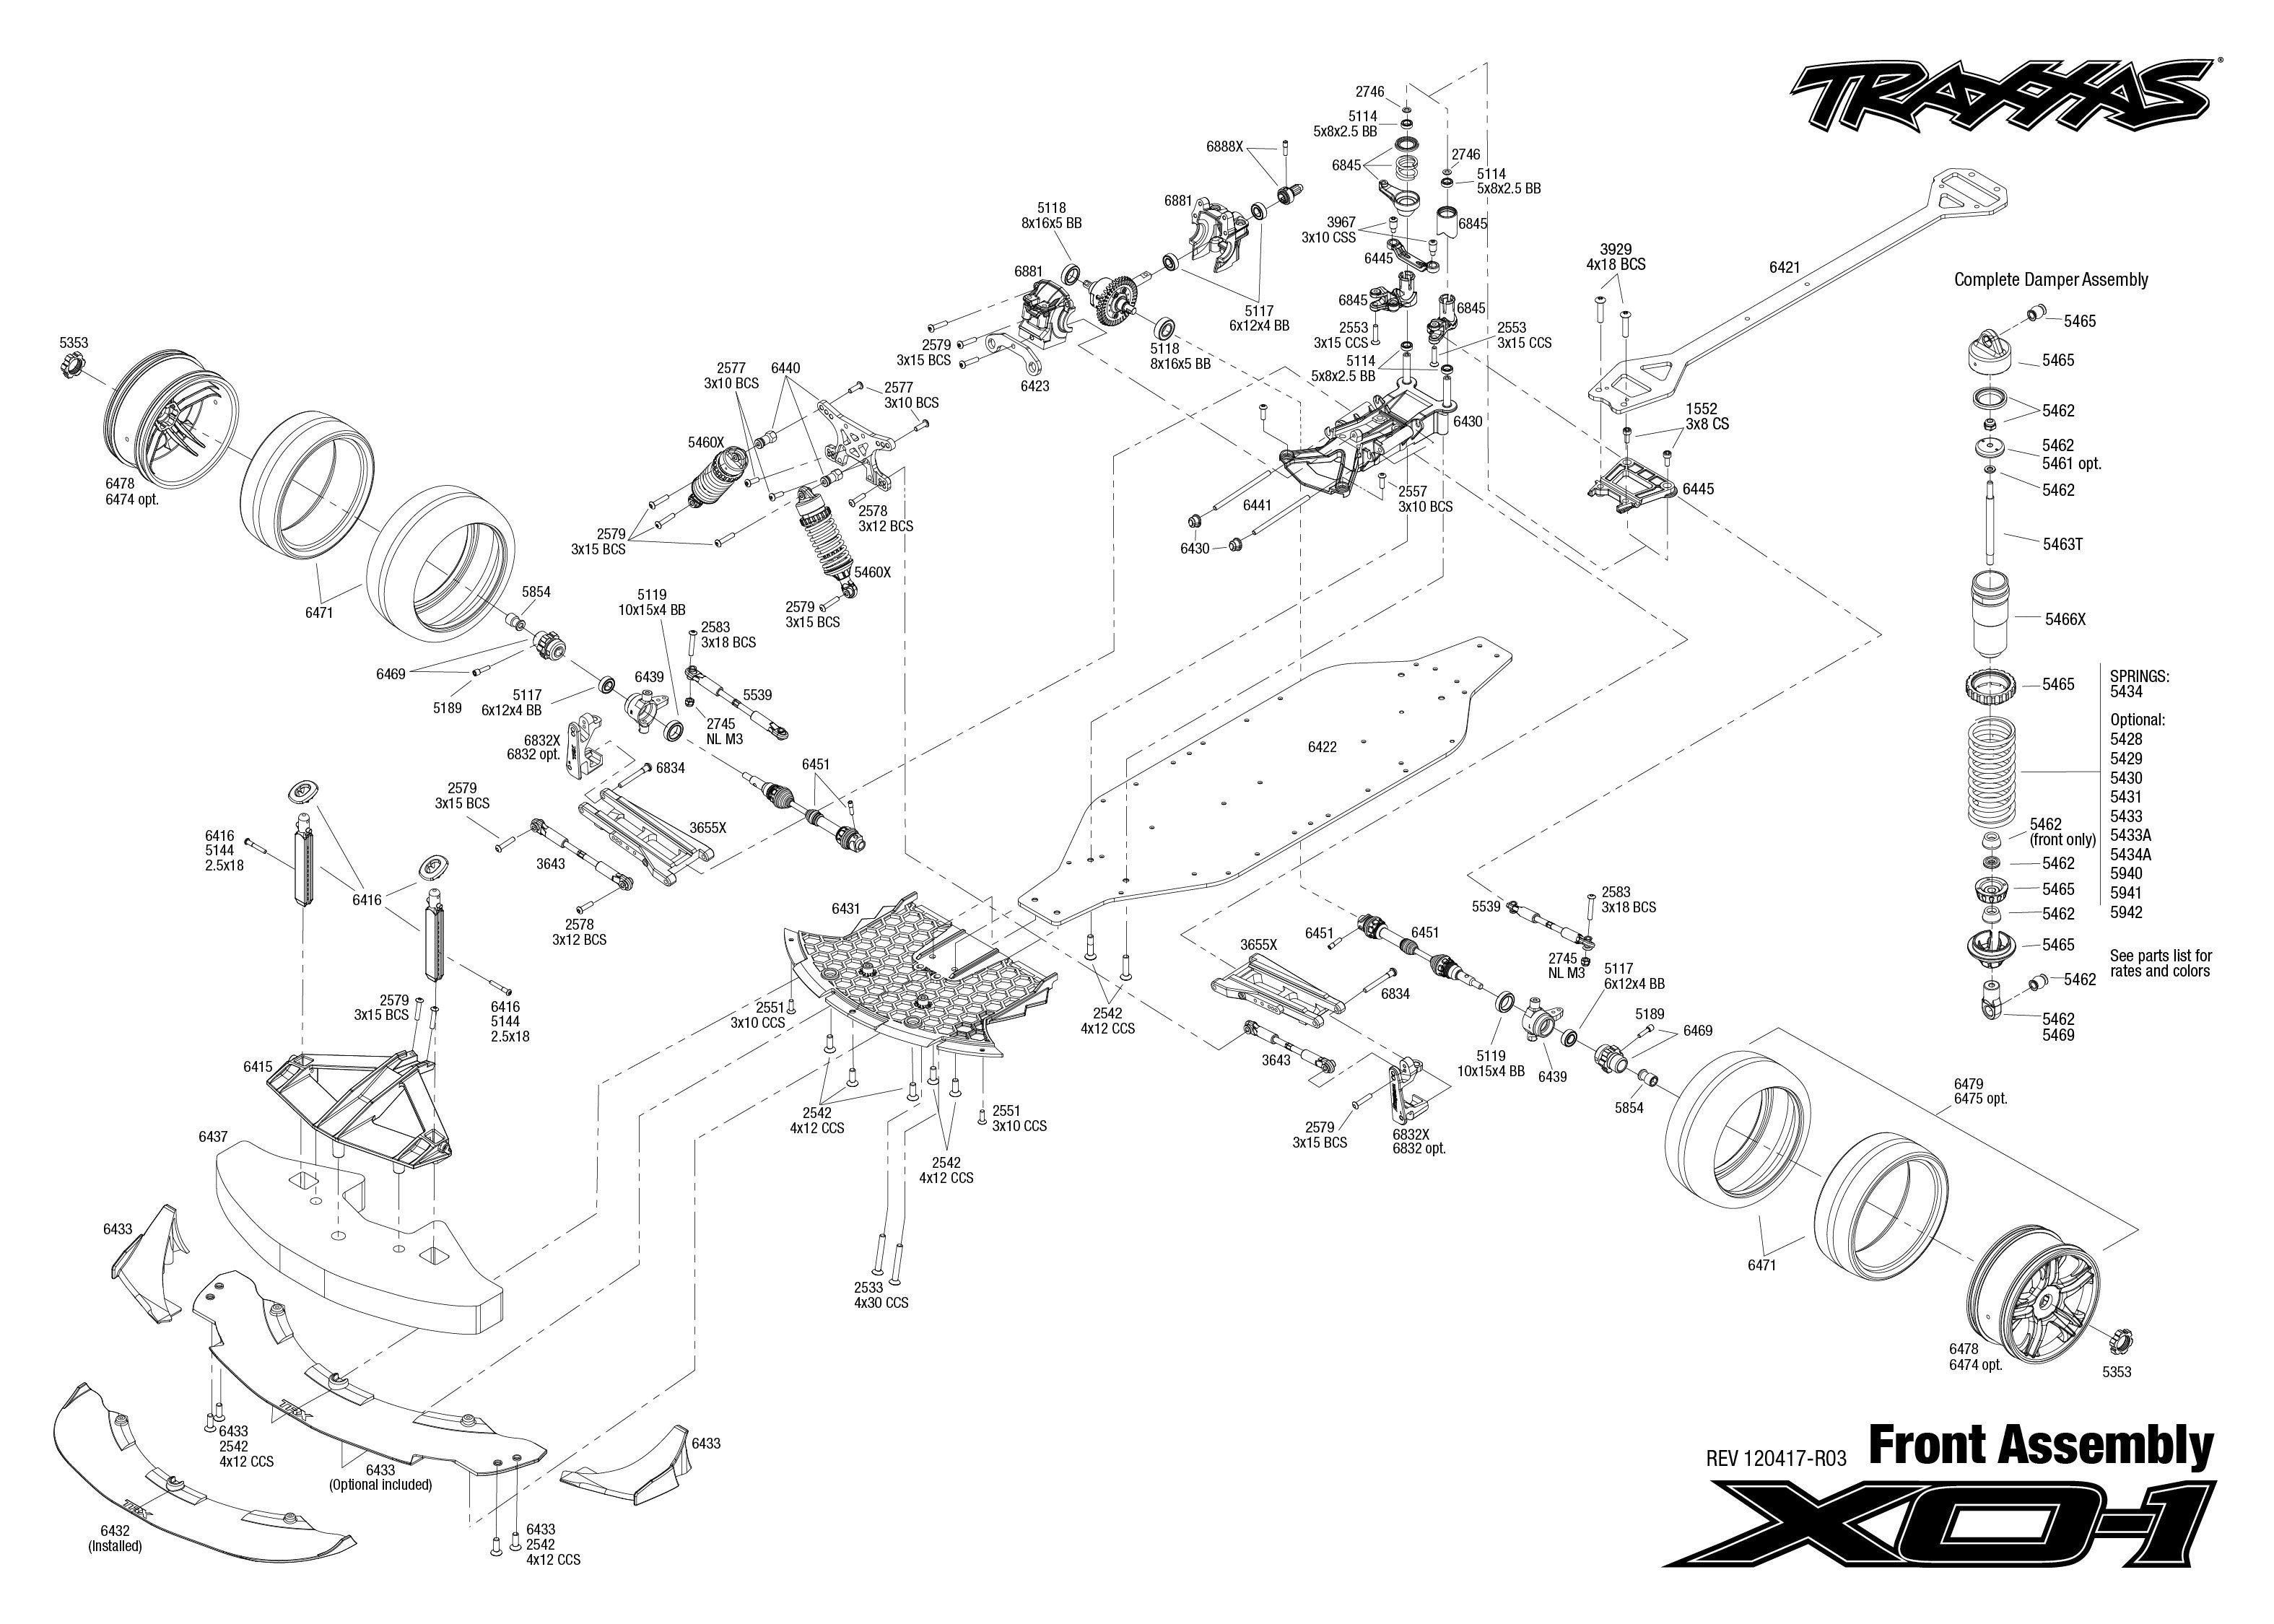 Parts Exploded View For Lg Lp1411shr Download Traxxas 1834 Body Clips 1 90 1951 Half Shaft Xo 7 Brushless Front Part Astra